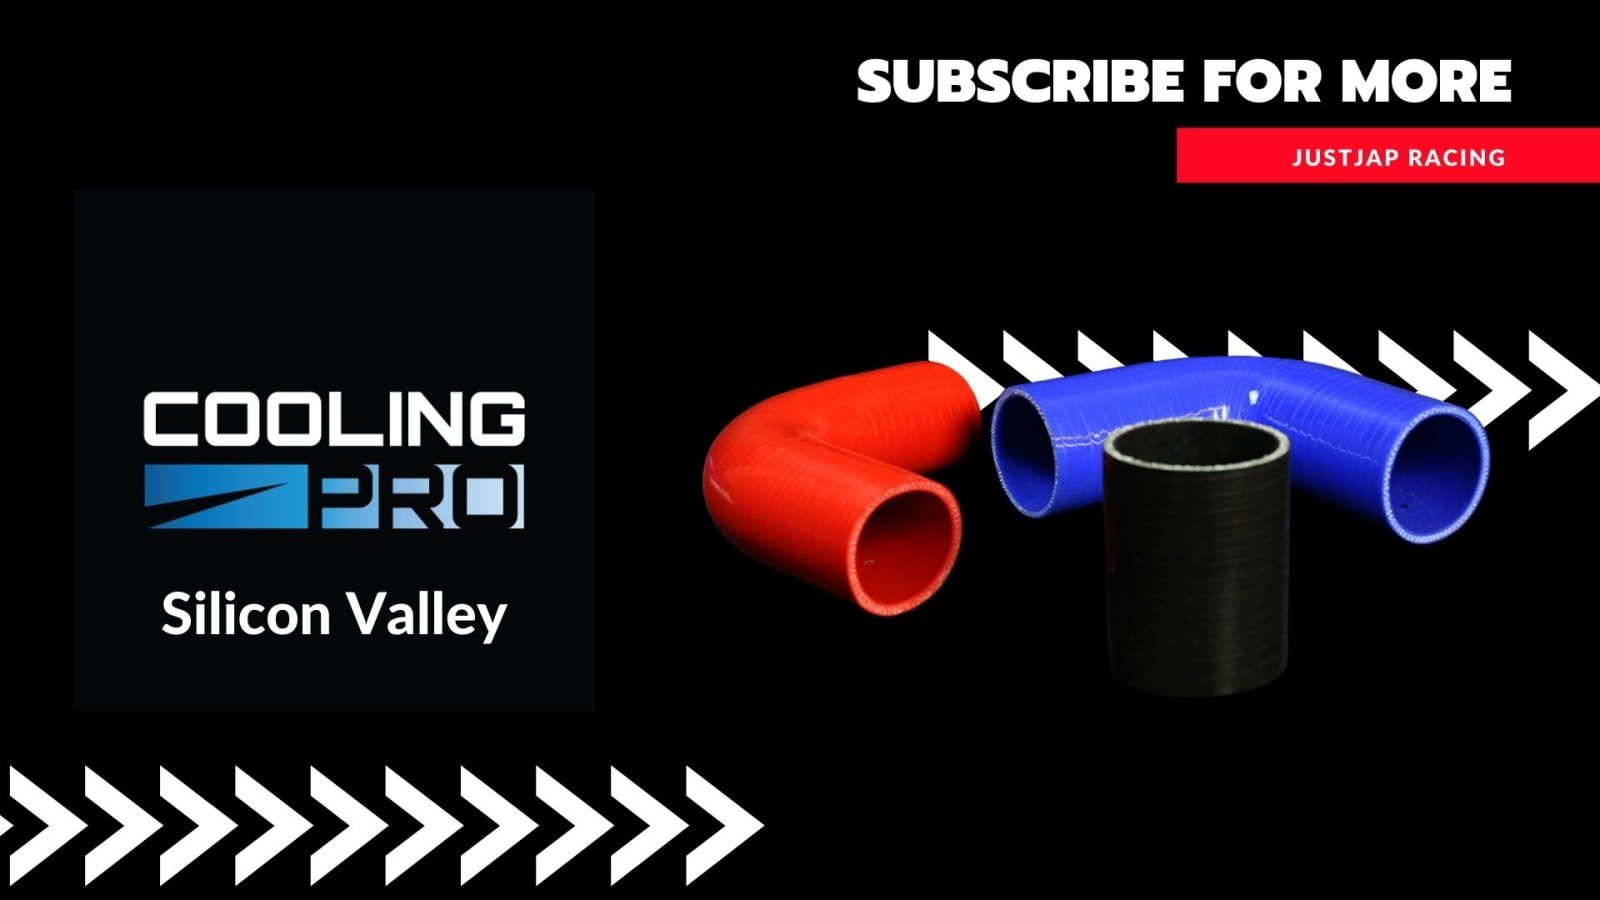 Cooling Pro Silicone 3 Inch / 76mm Humped Joiner Hose